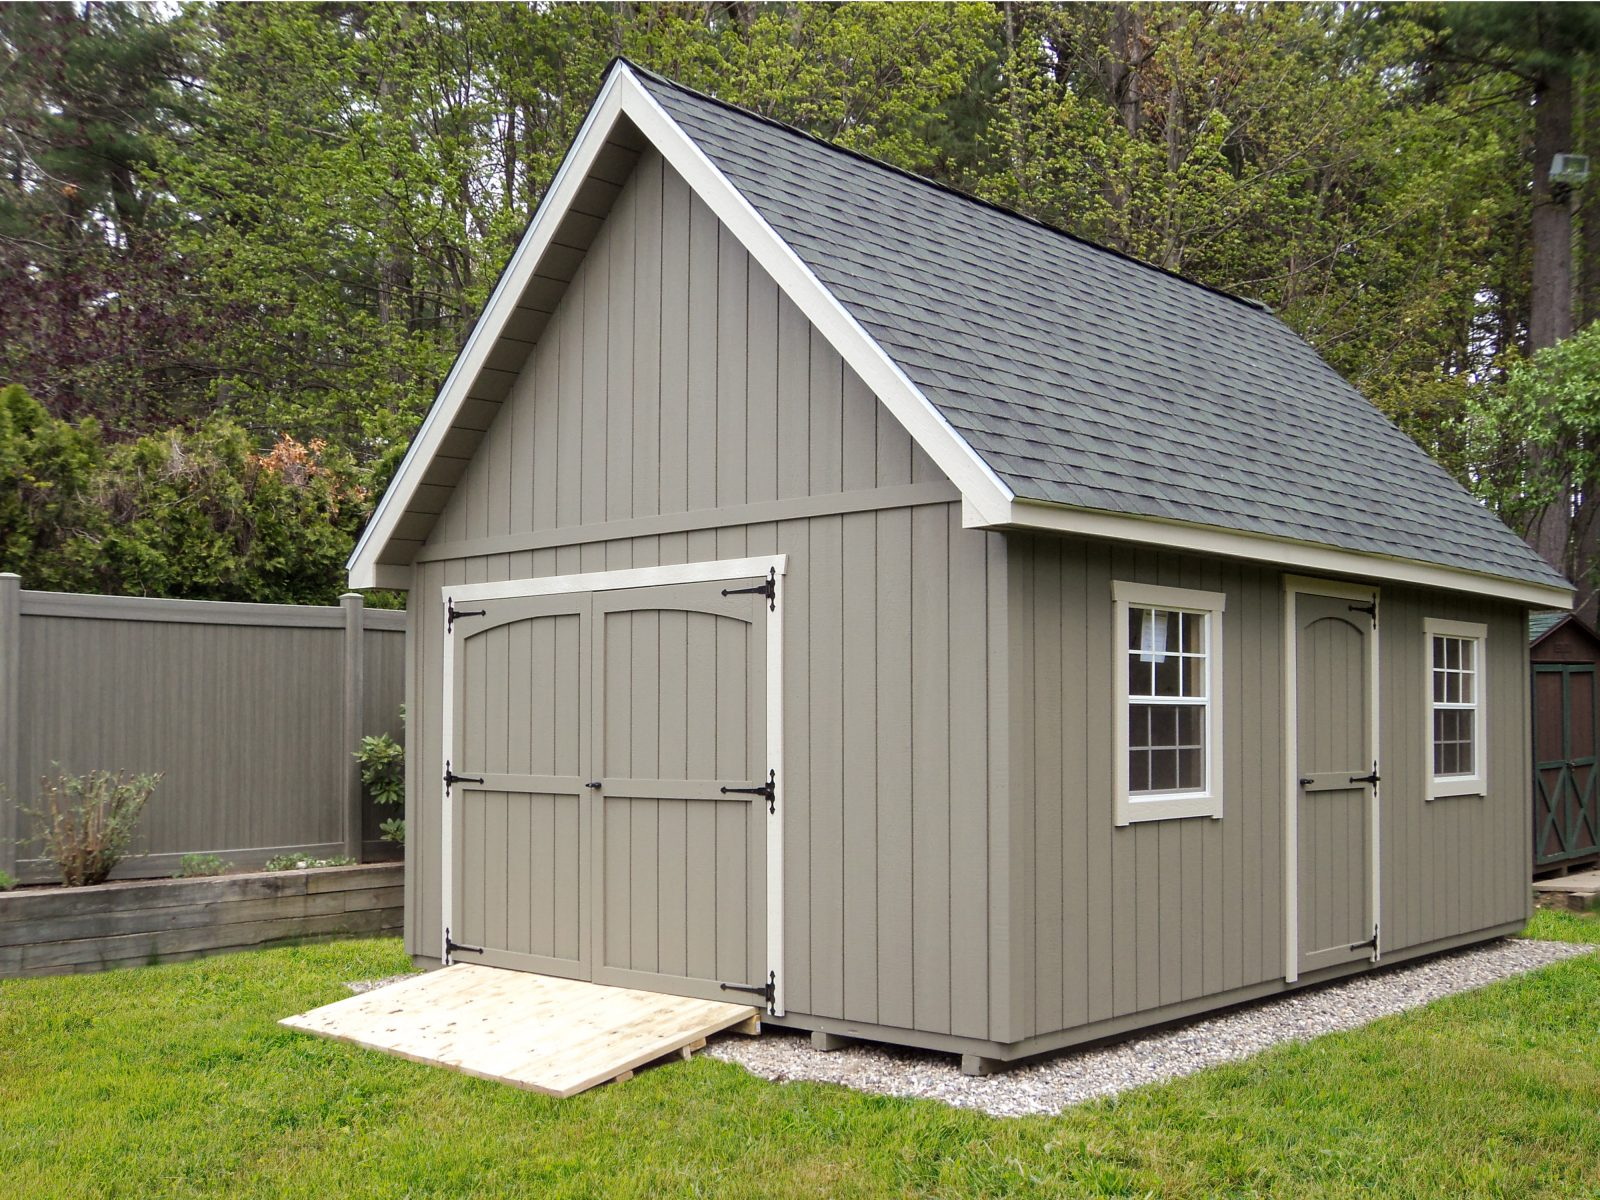 large storage sheds for sale in springfield massachusetts